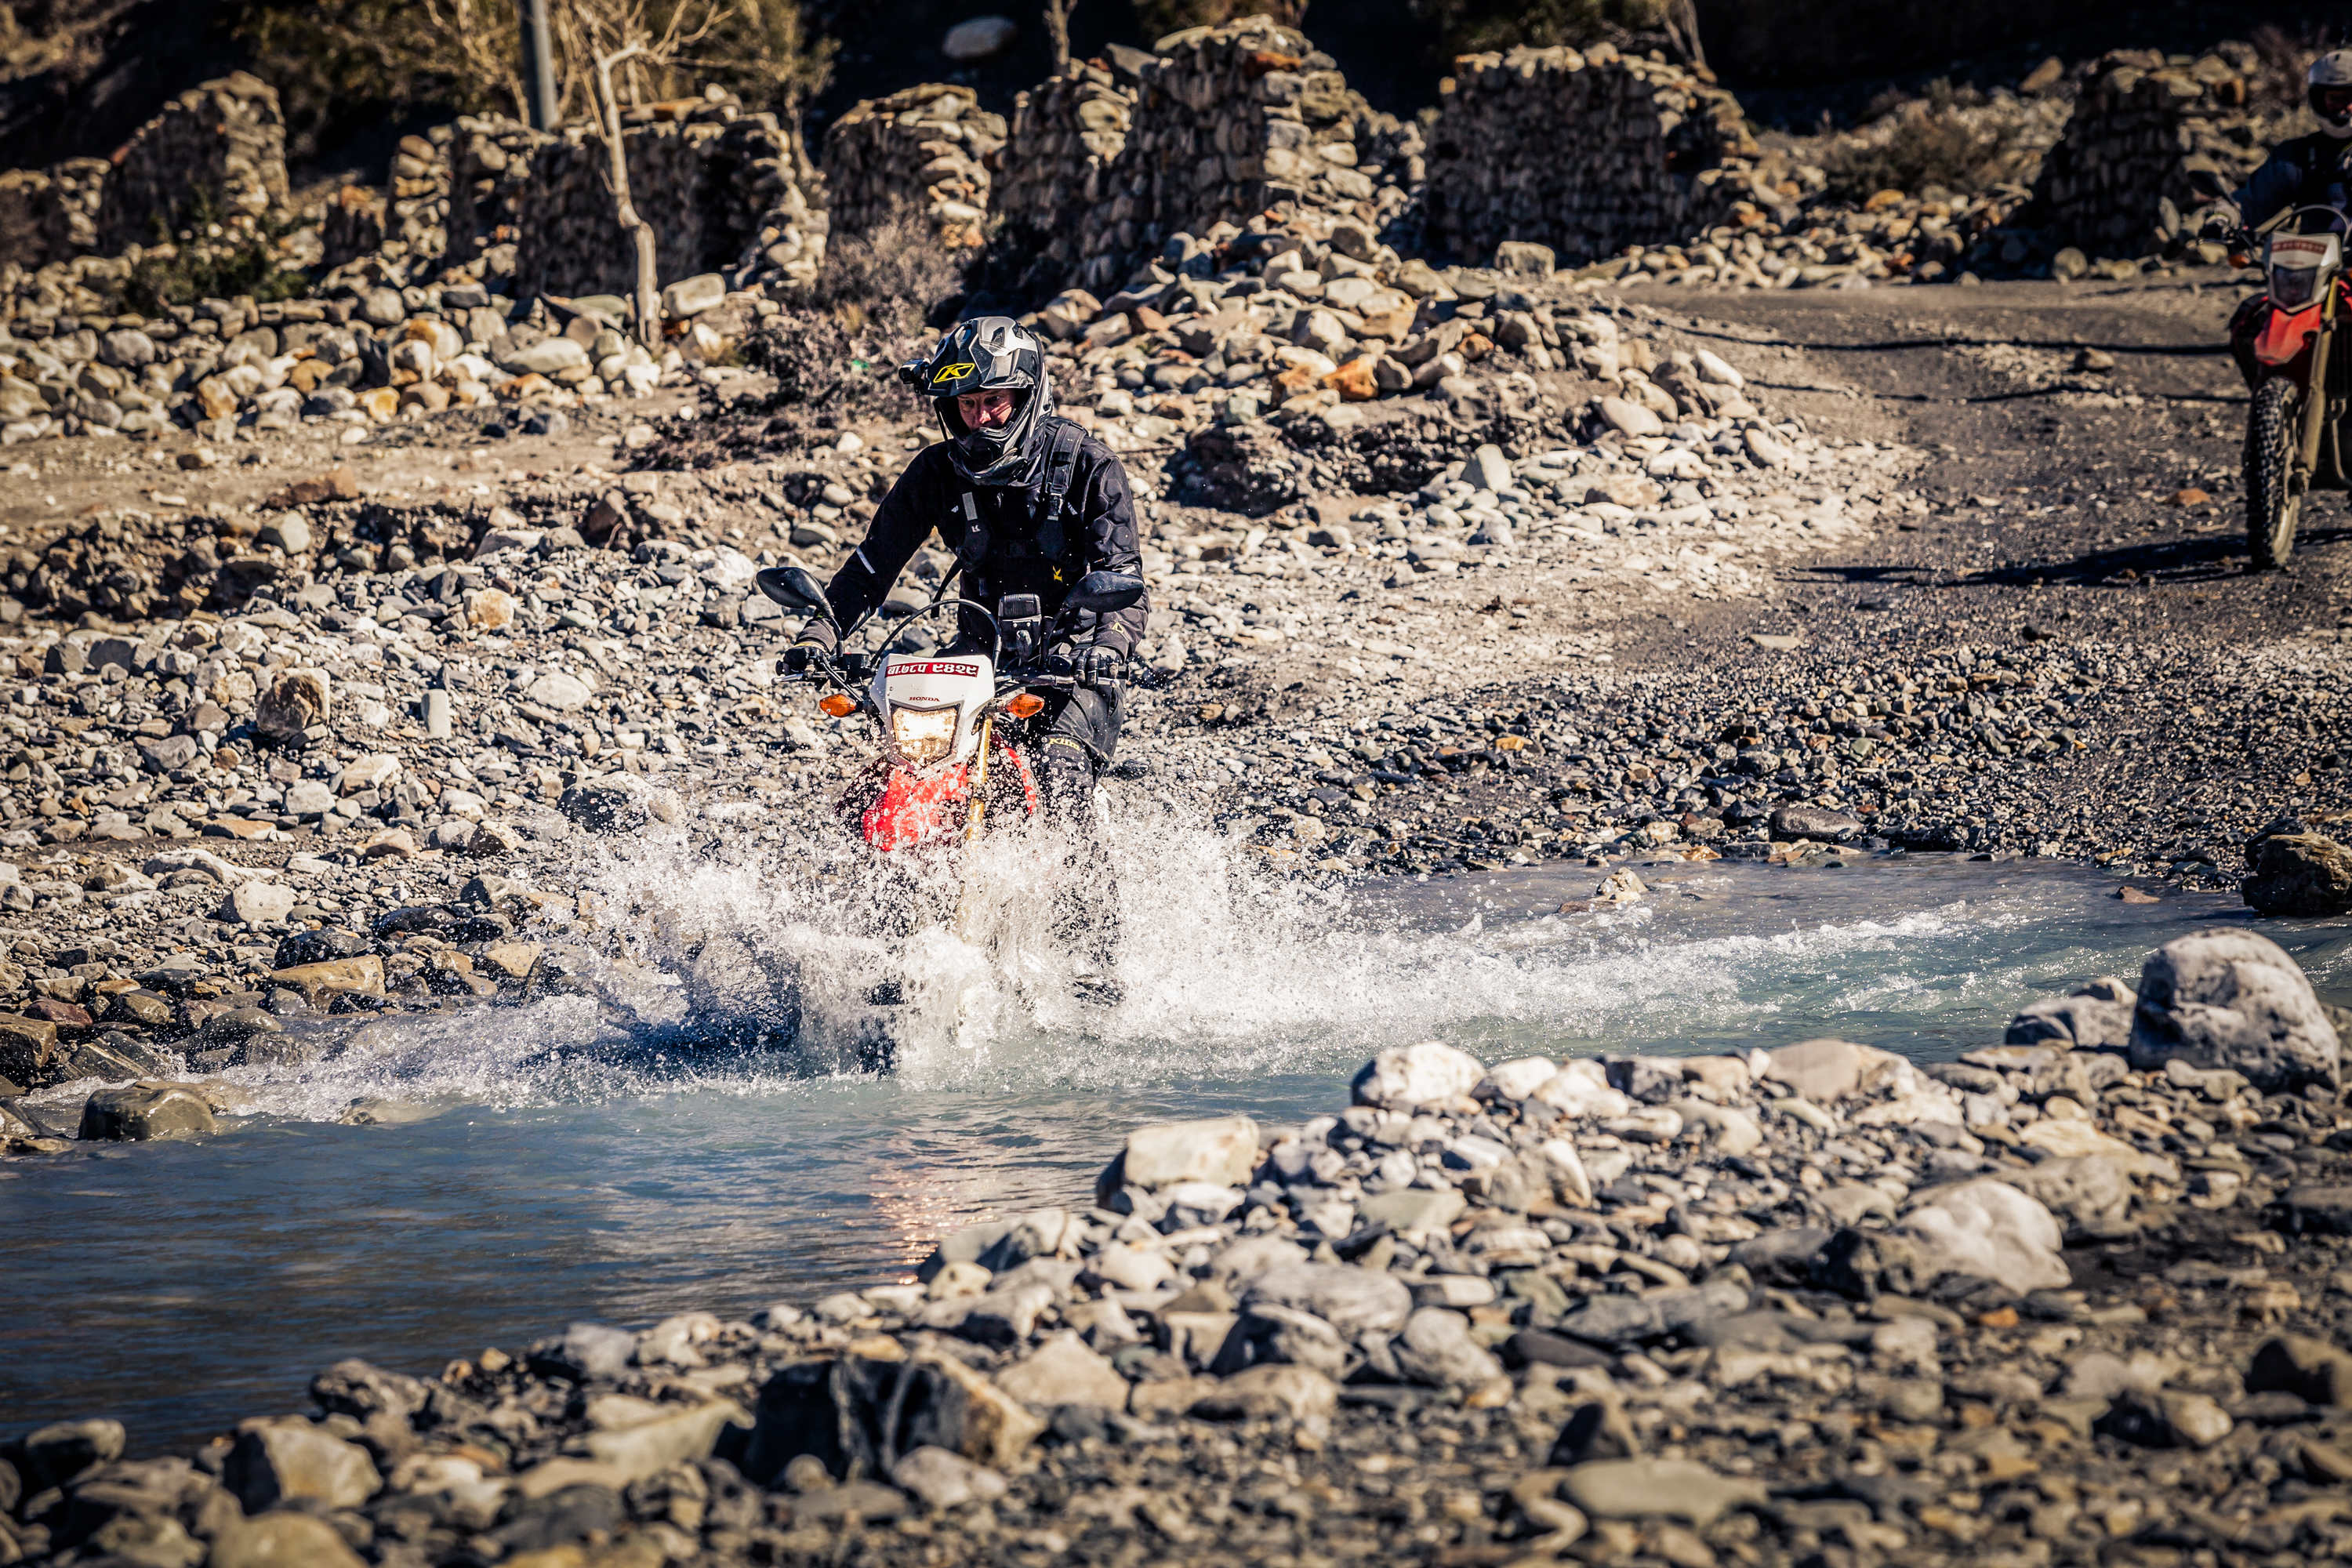 TWHMC-nepal-motorcycle-adventure-2016-1699-2.jpg